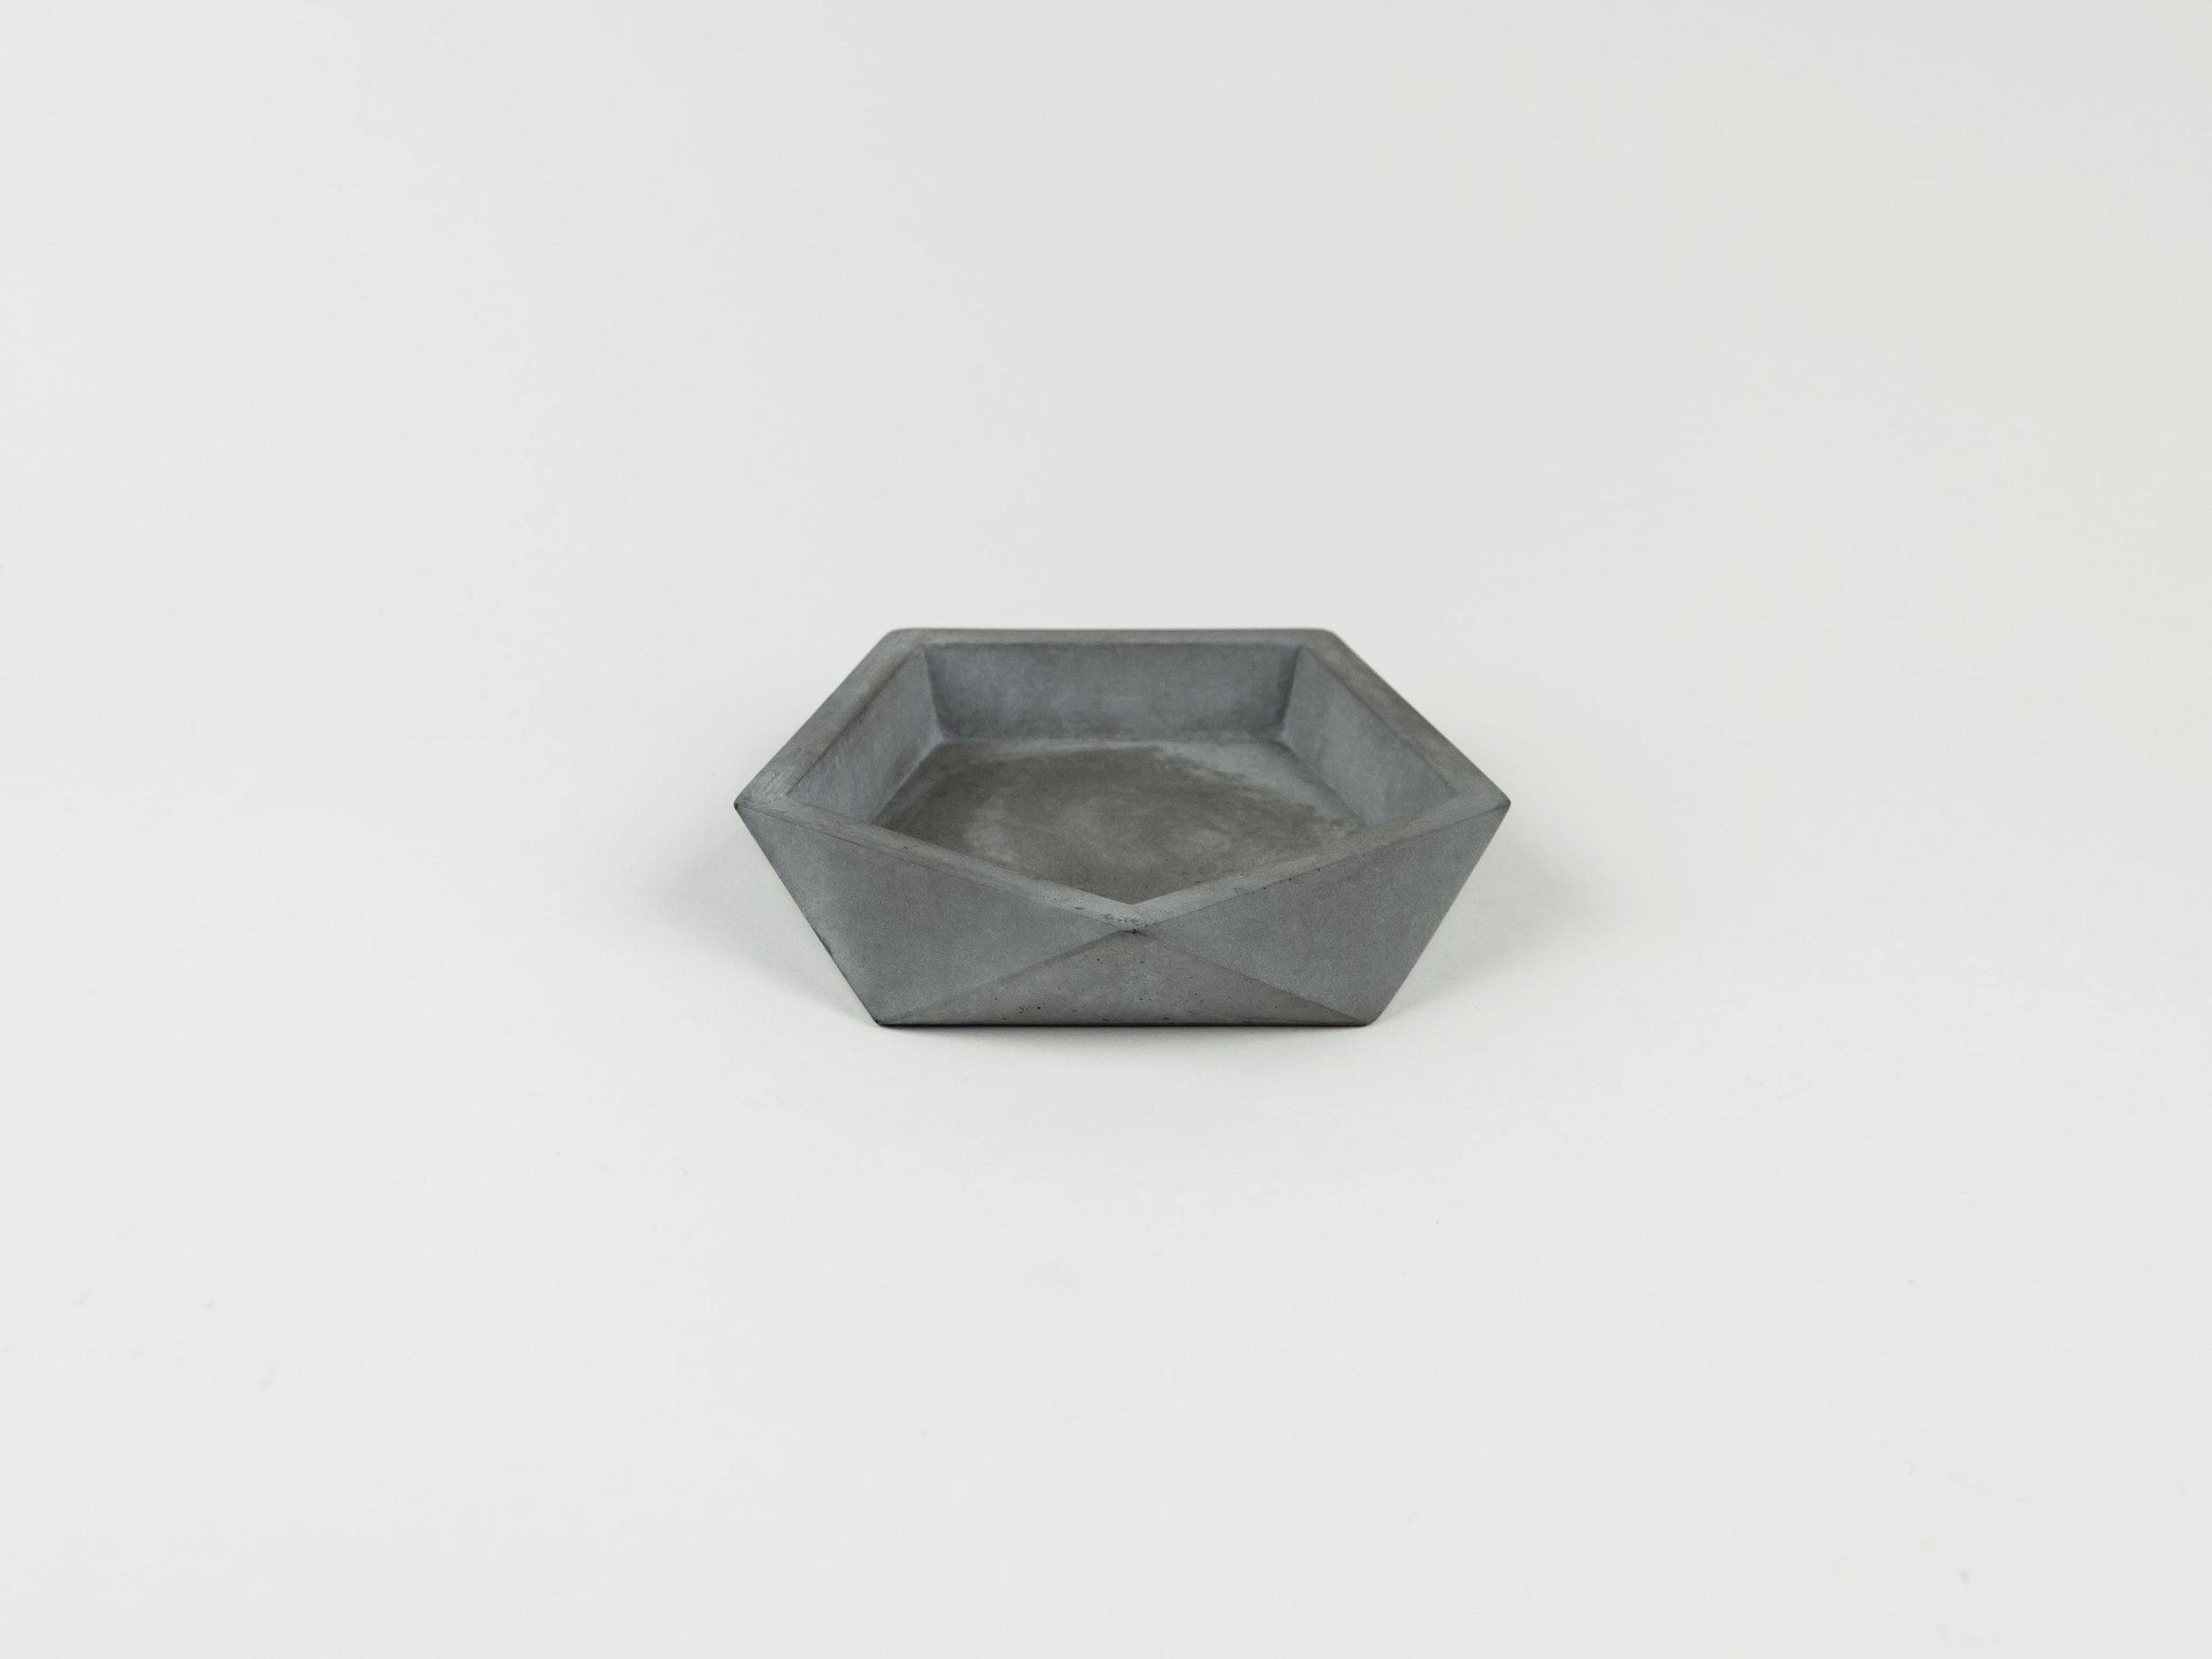 Flat-Charcoal-colored-geometric-dish-for-jewelry,-keys-and-other-personal-belongings.jpg